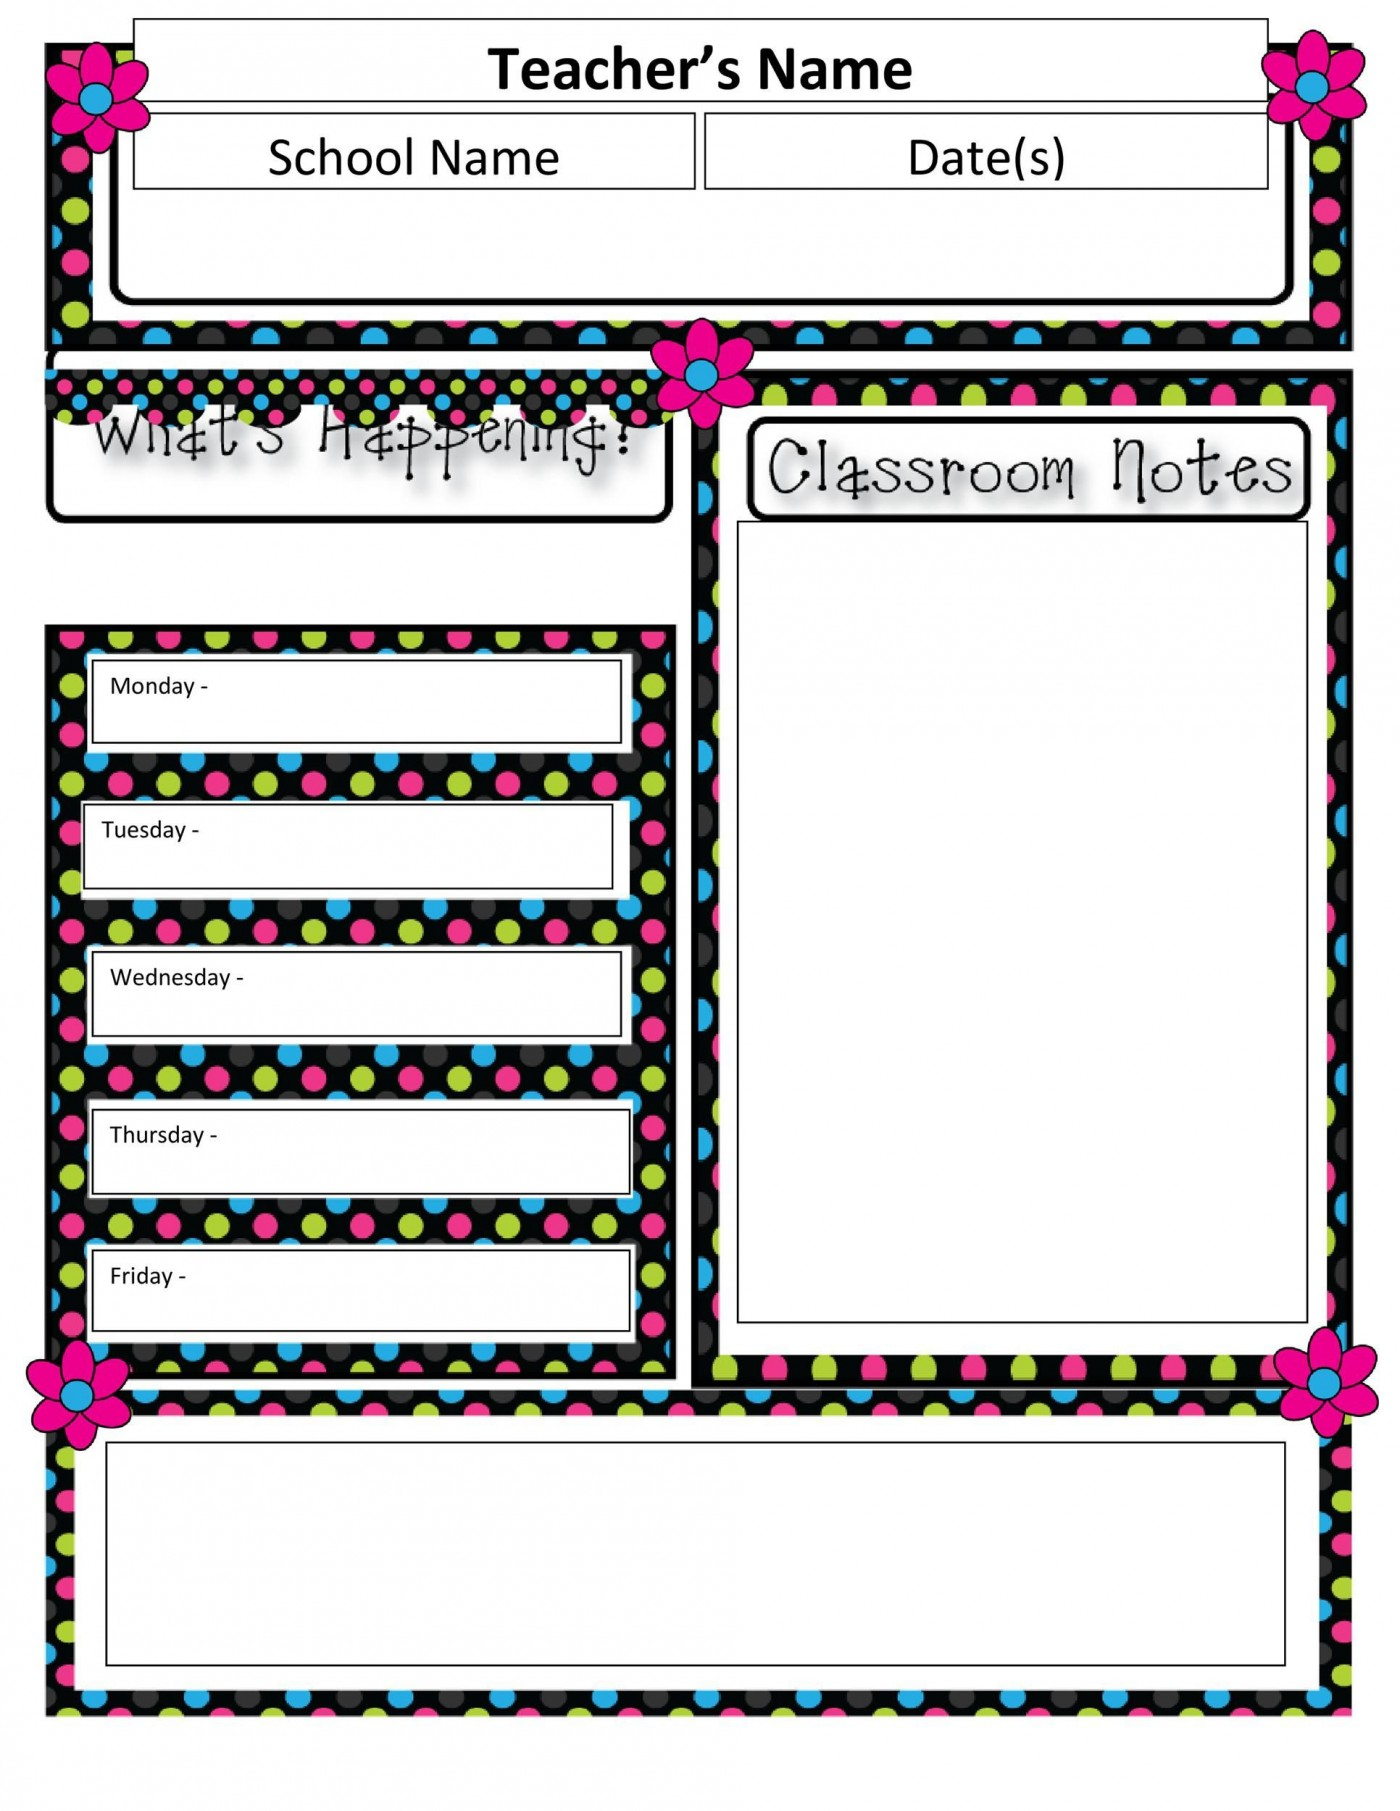 008 Unique Free Teacher Newsletter Template Image  Classroom For Microsoft Word Google Doc1400